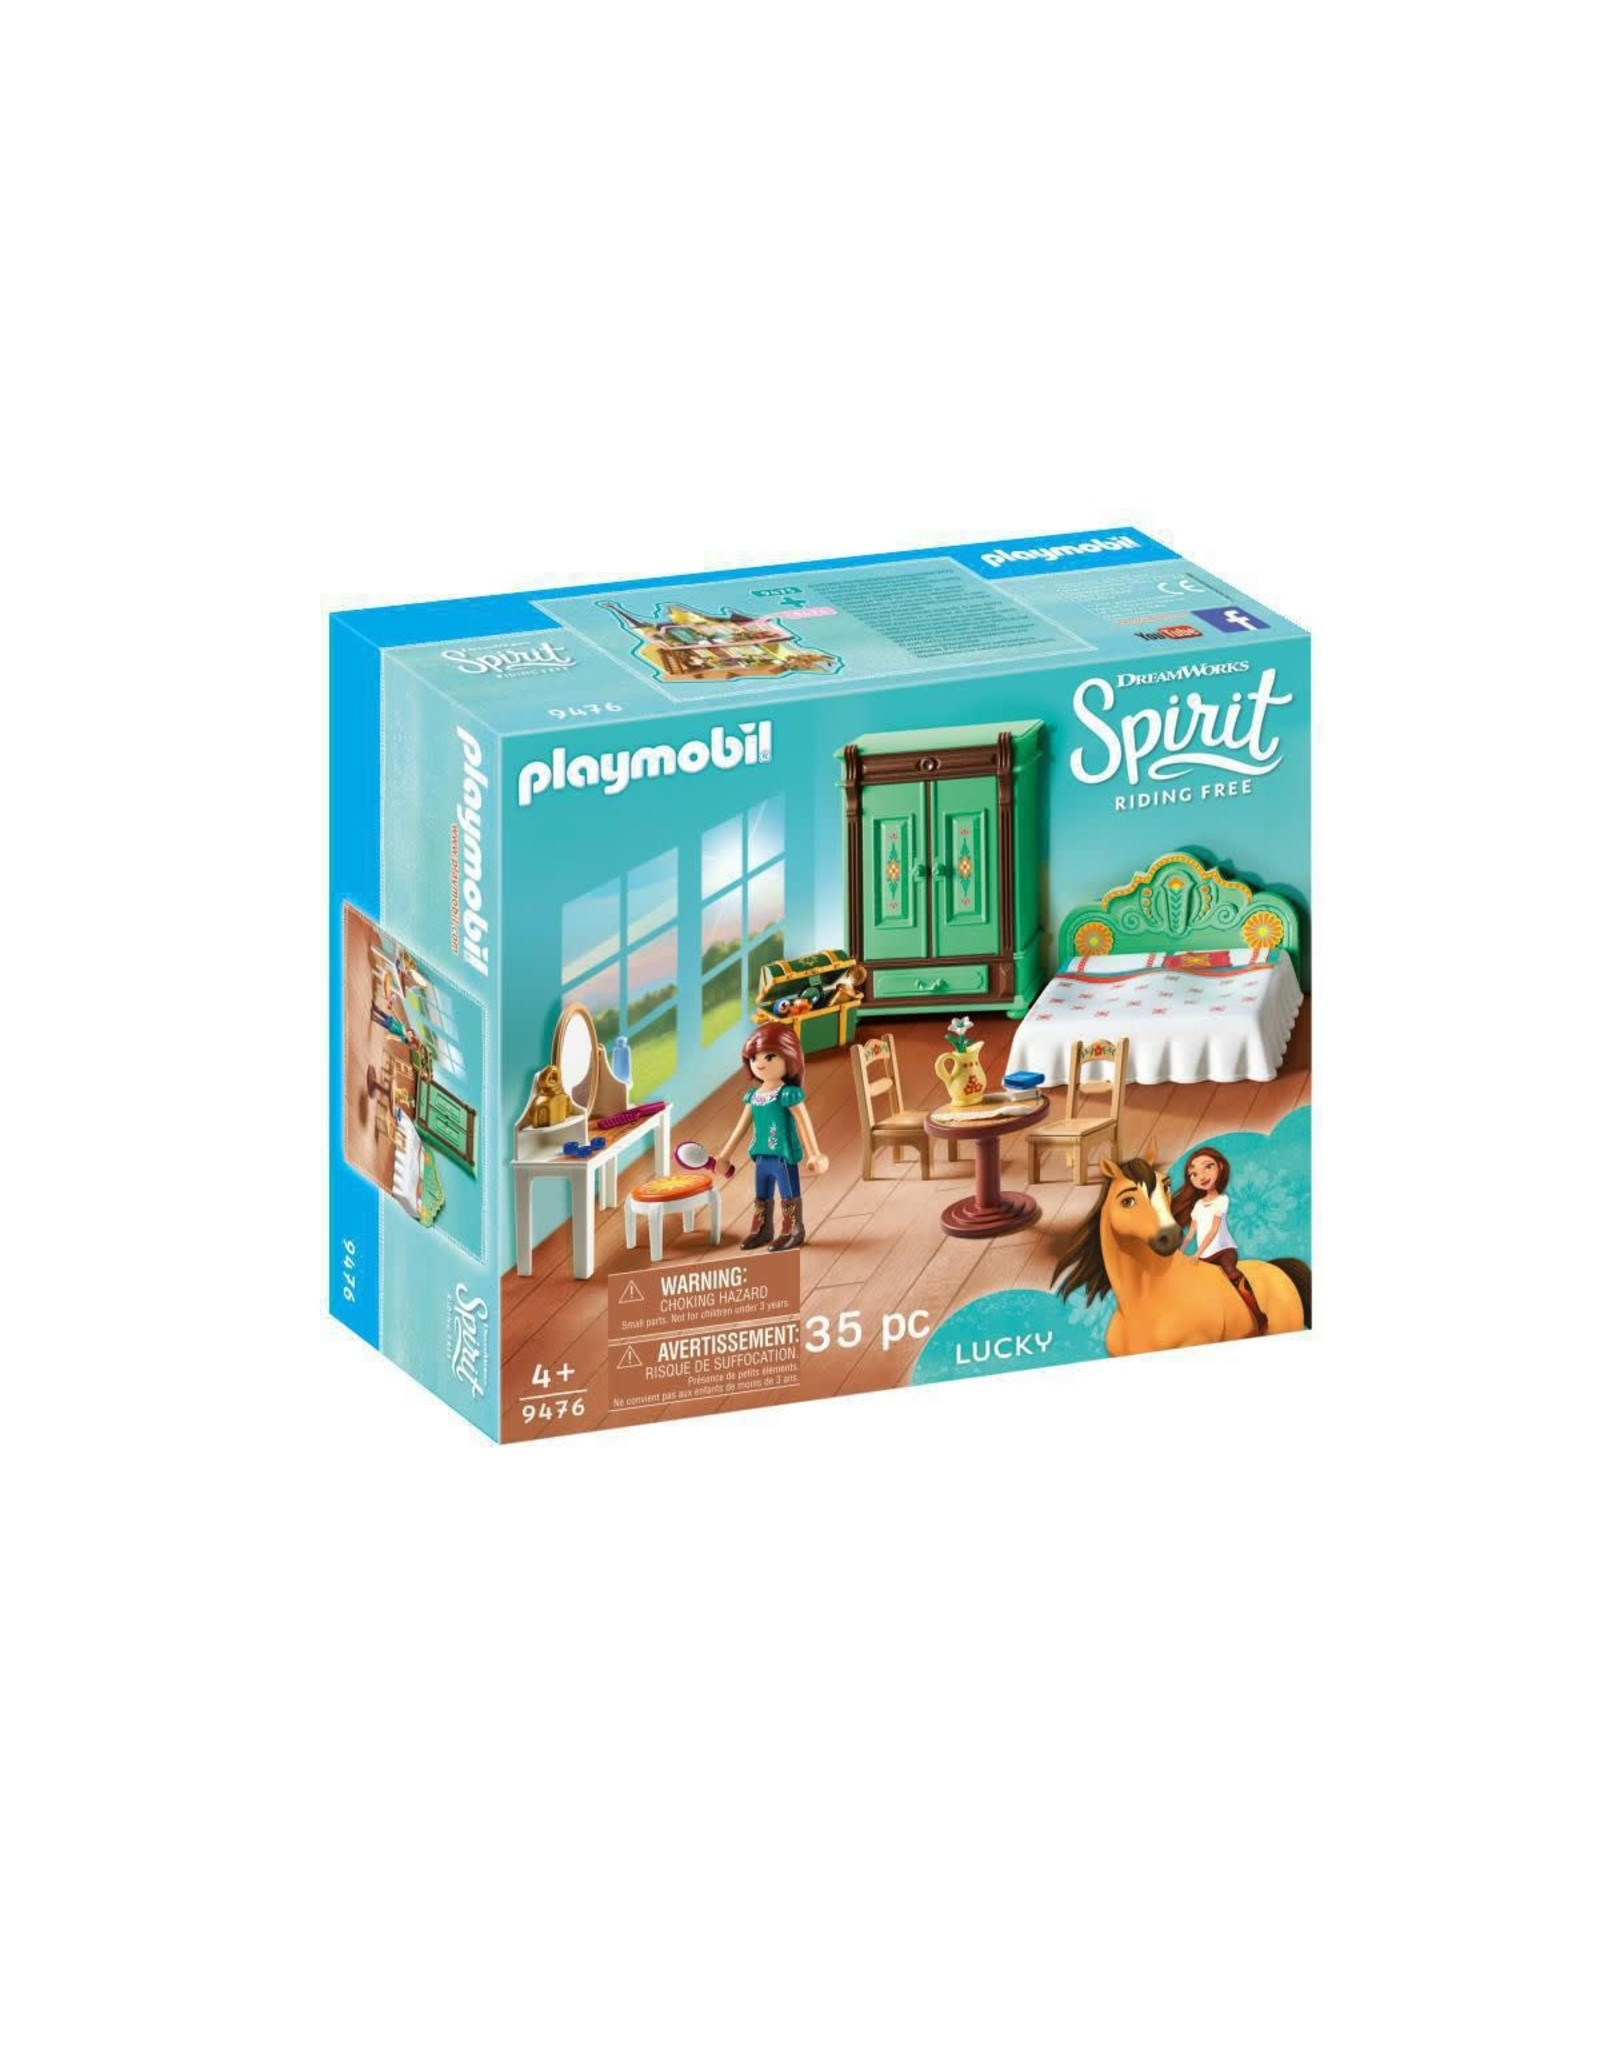 Playmobil Spirit: Lucky's Bedroom